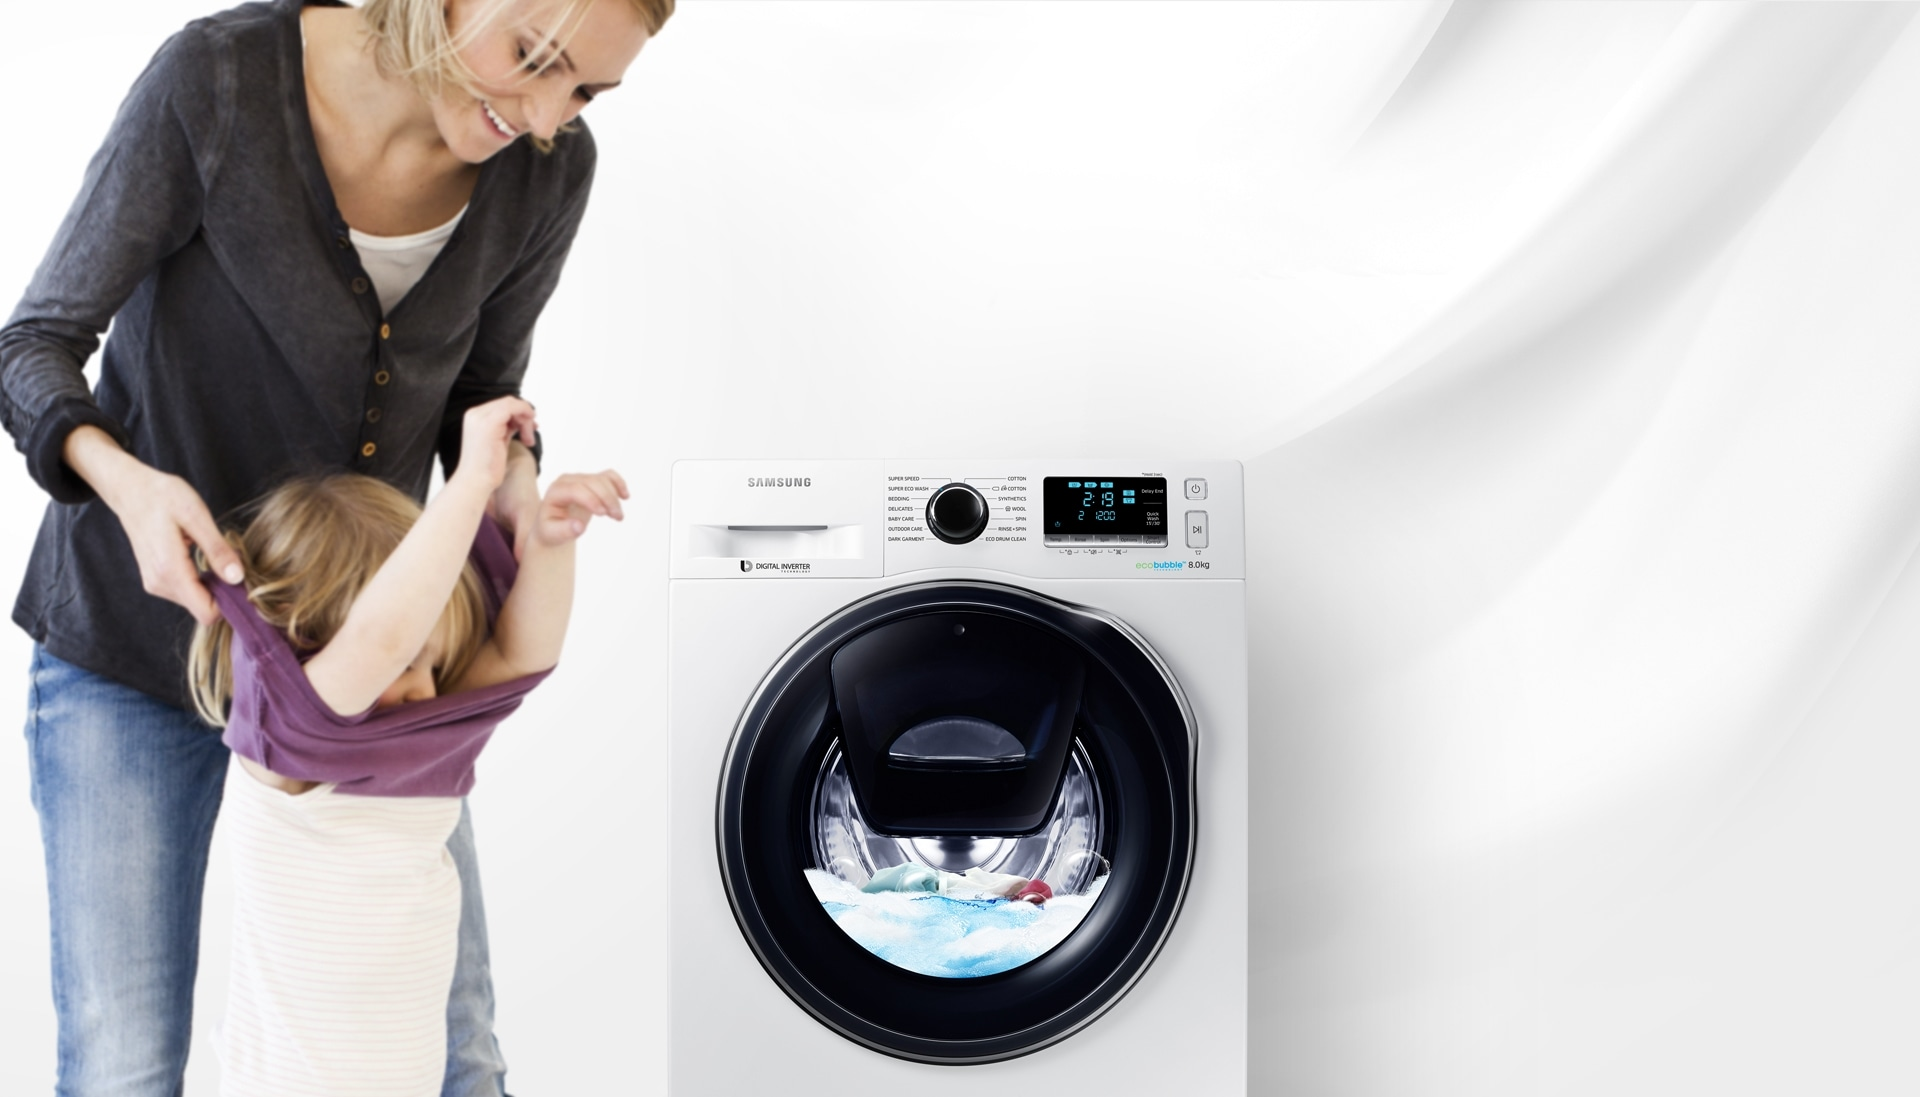 An image of a woman taking off her child's clothes next to a WW7500 washing machine which is in the middle of a cycle.